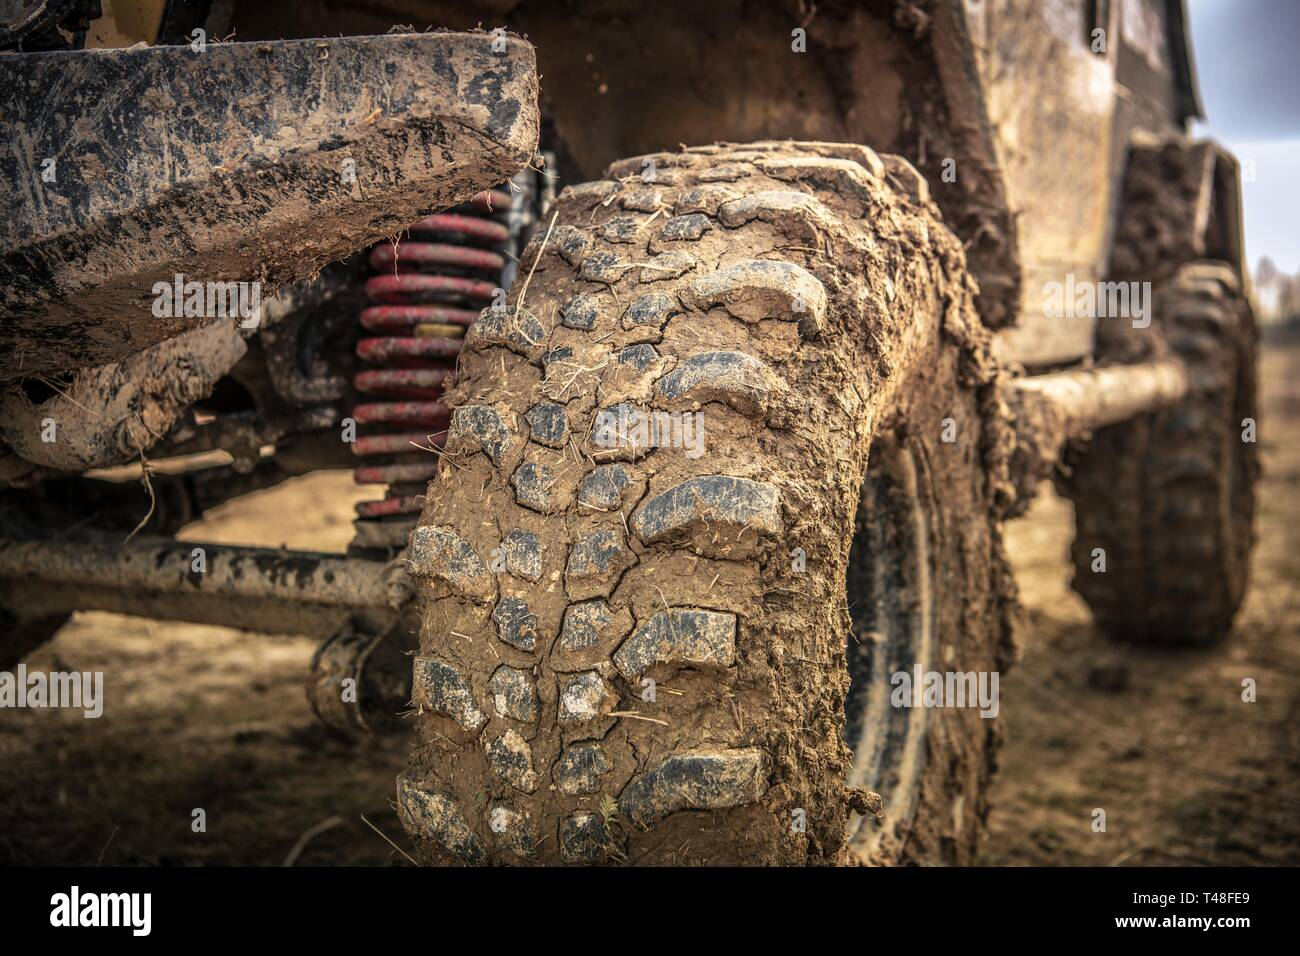 Off Roader Tire Closeup. SUV Wheel Covered by Clay and Mud. Motorsport Theme. Stock Photo